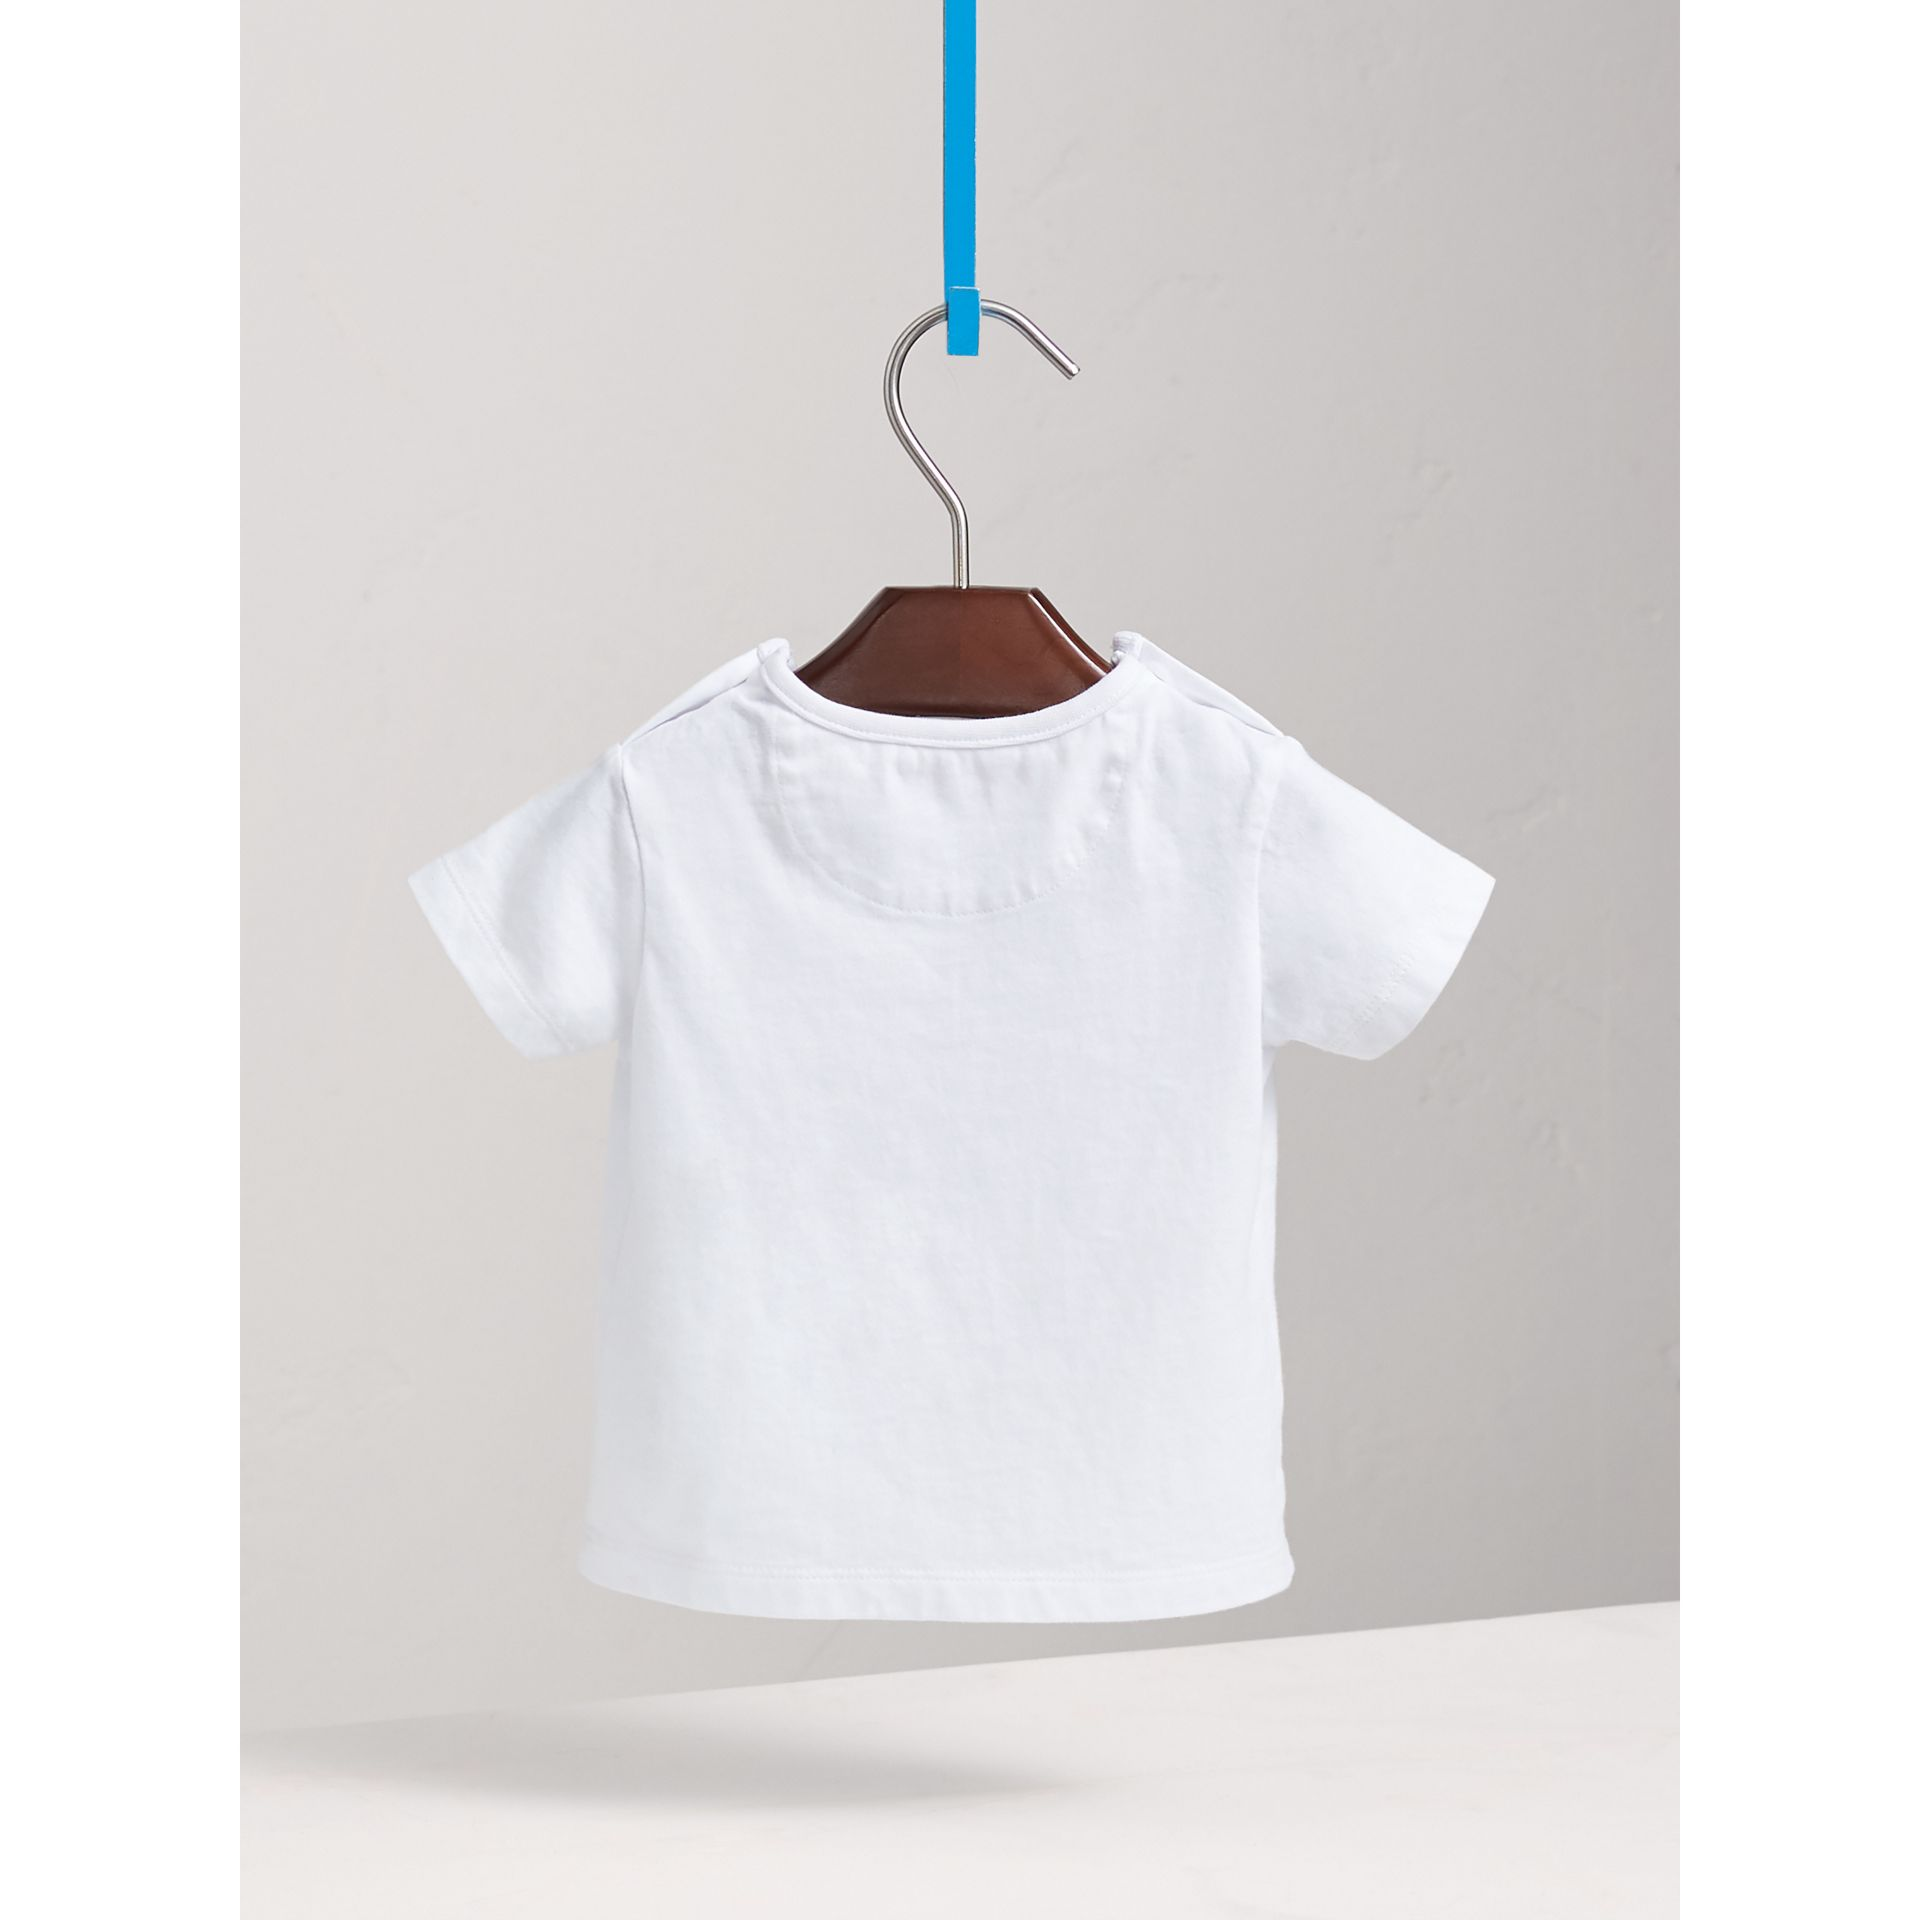 Parade Print Cotton T-shirt in White | Burberry - gallery image 3